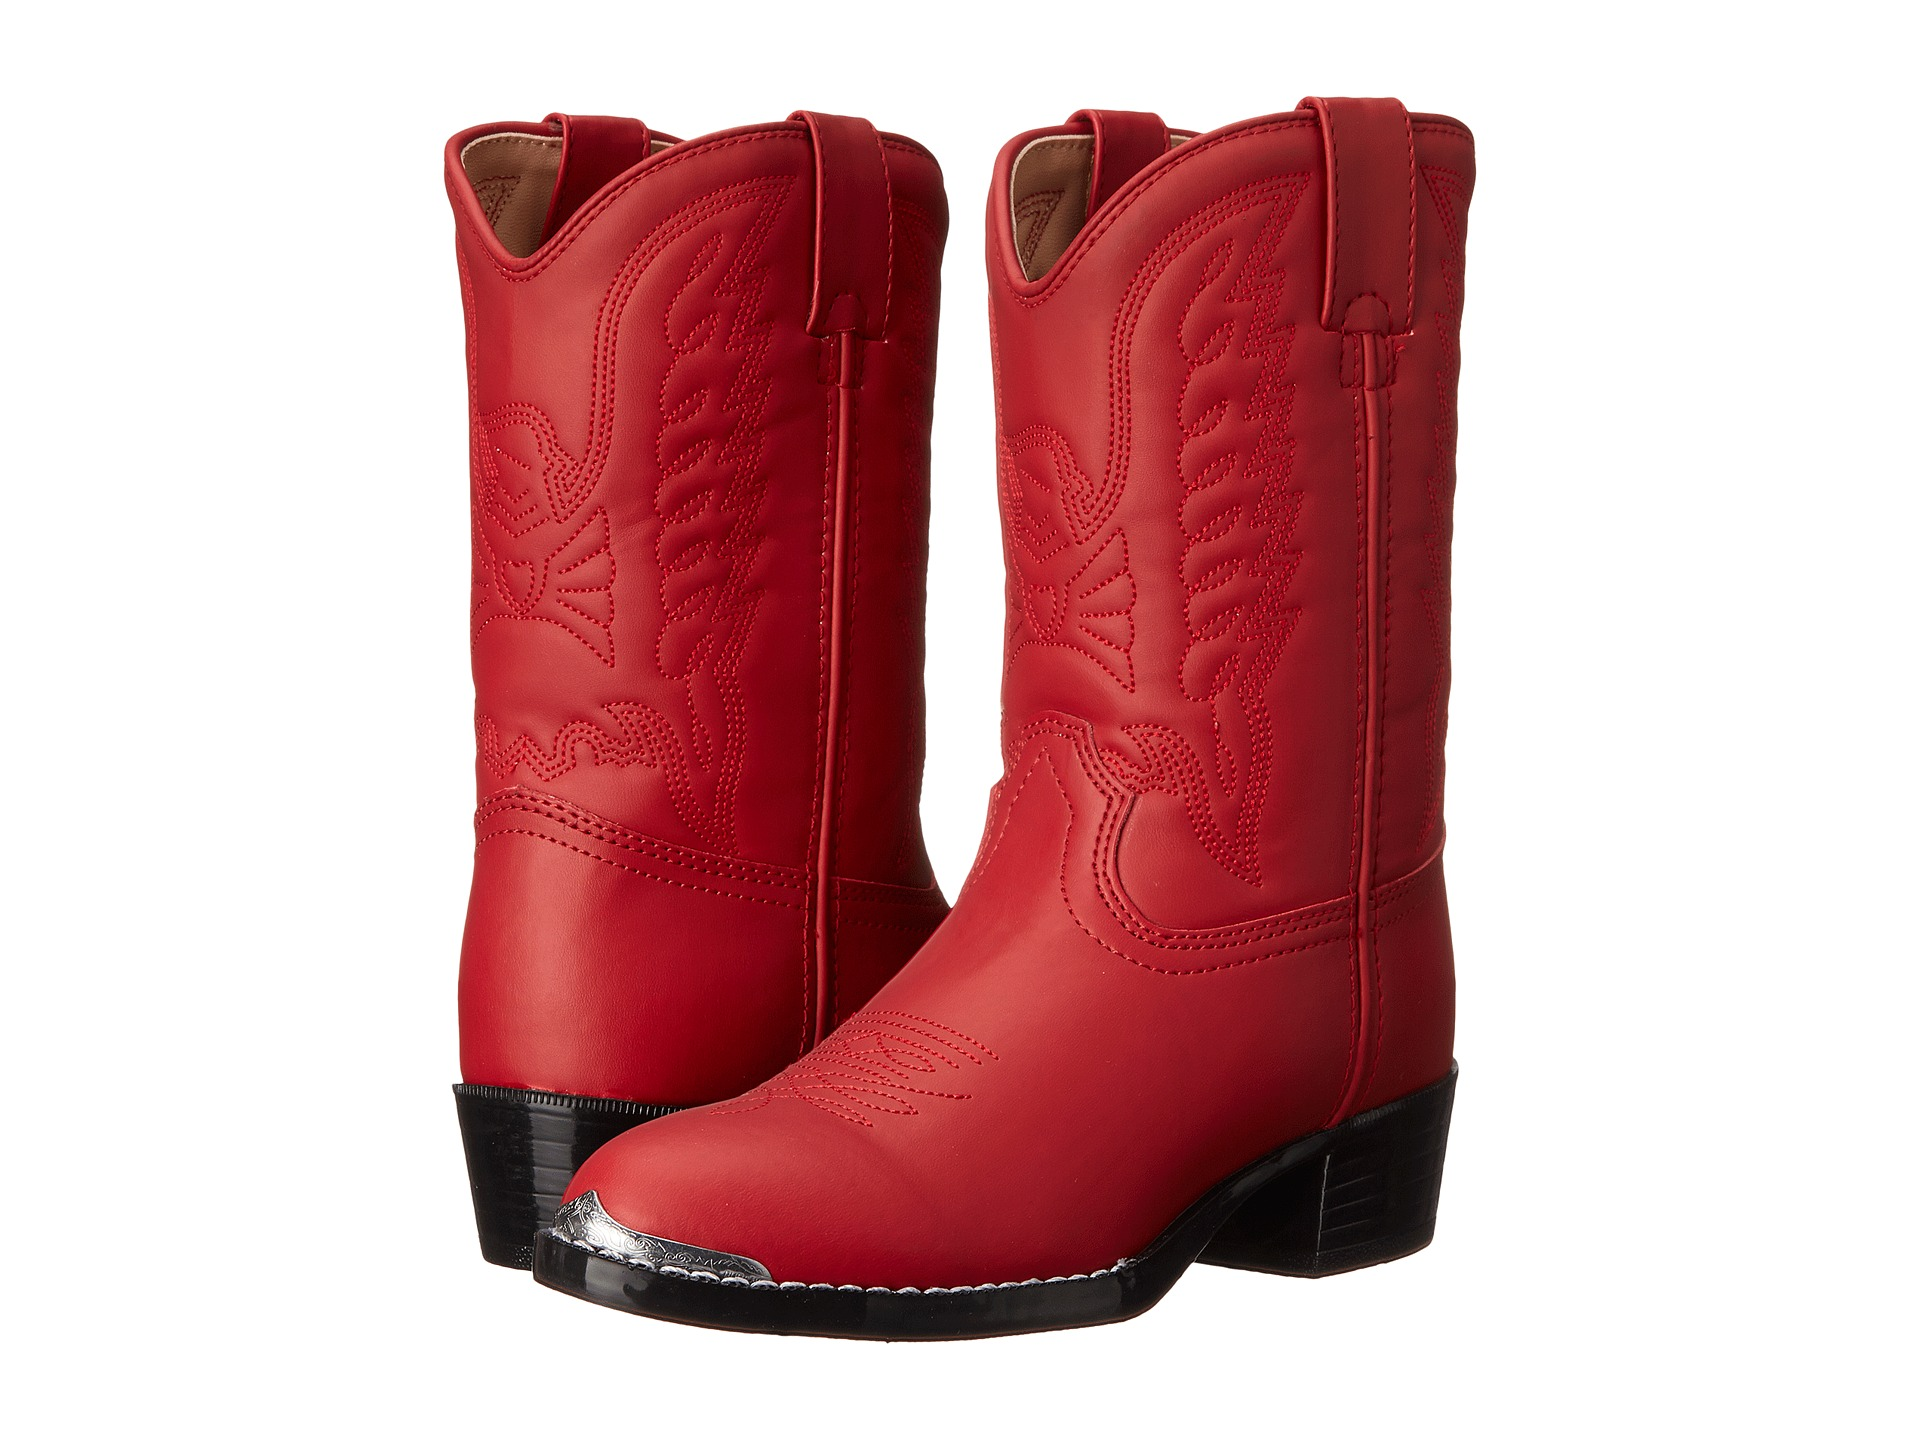 Cheap Cowgirl Boots For Kids GA0sqR43